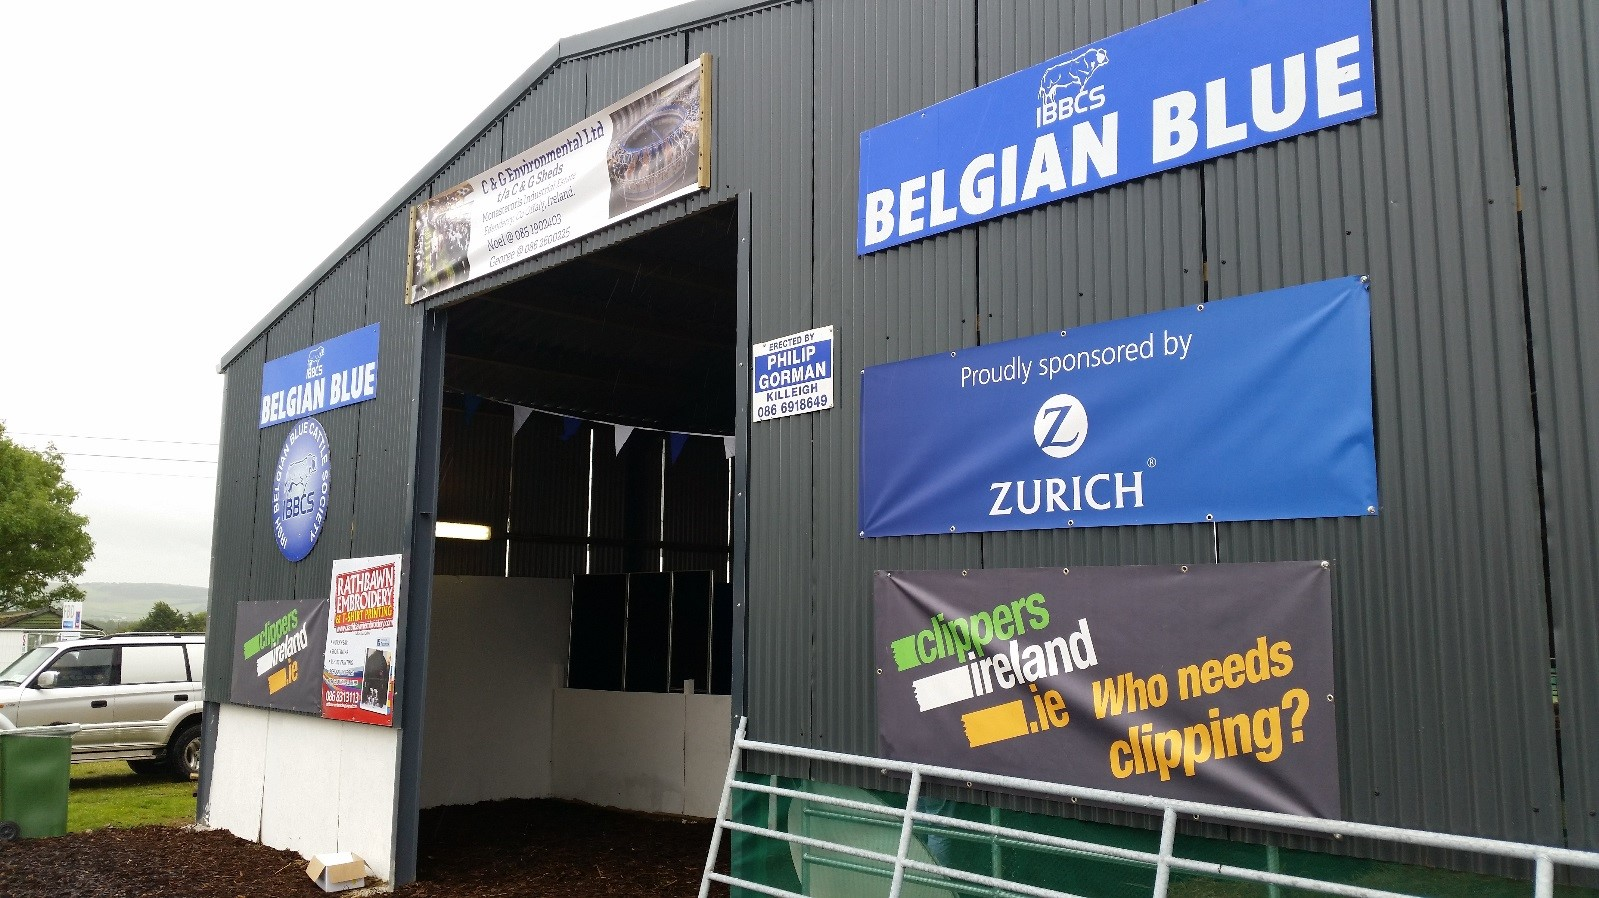 belgian-blue-ploughing-shed-banners.jpg